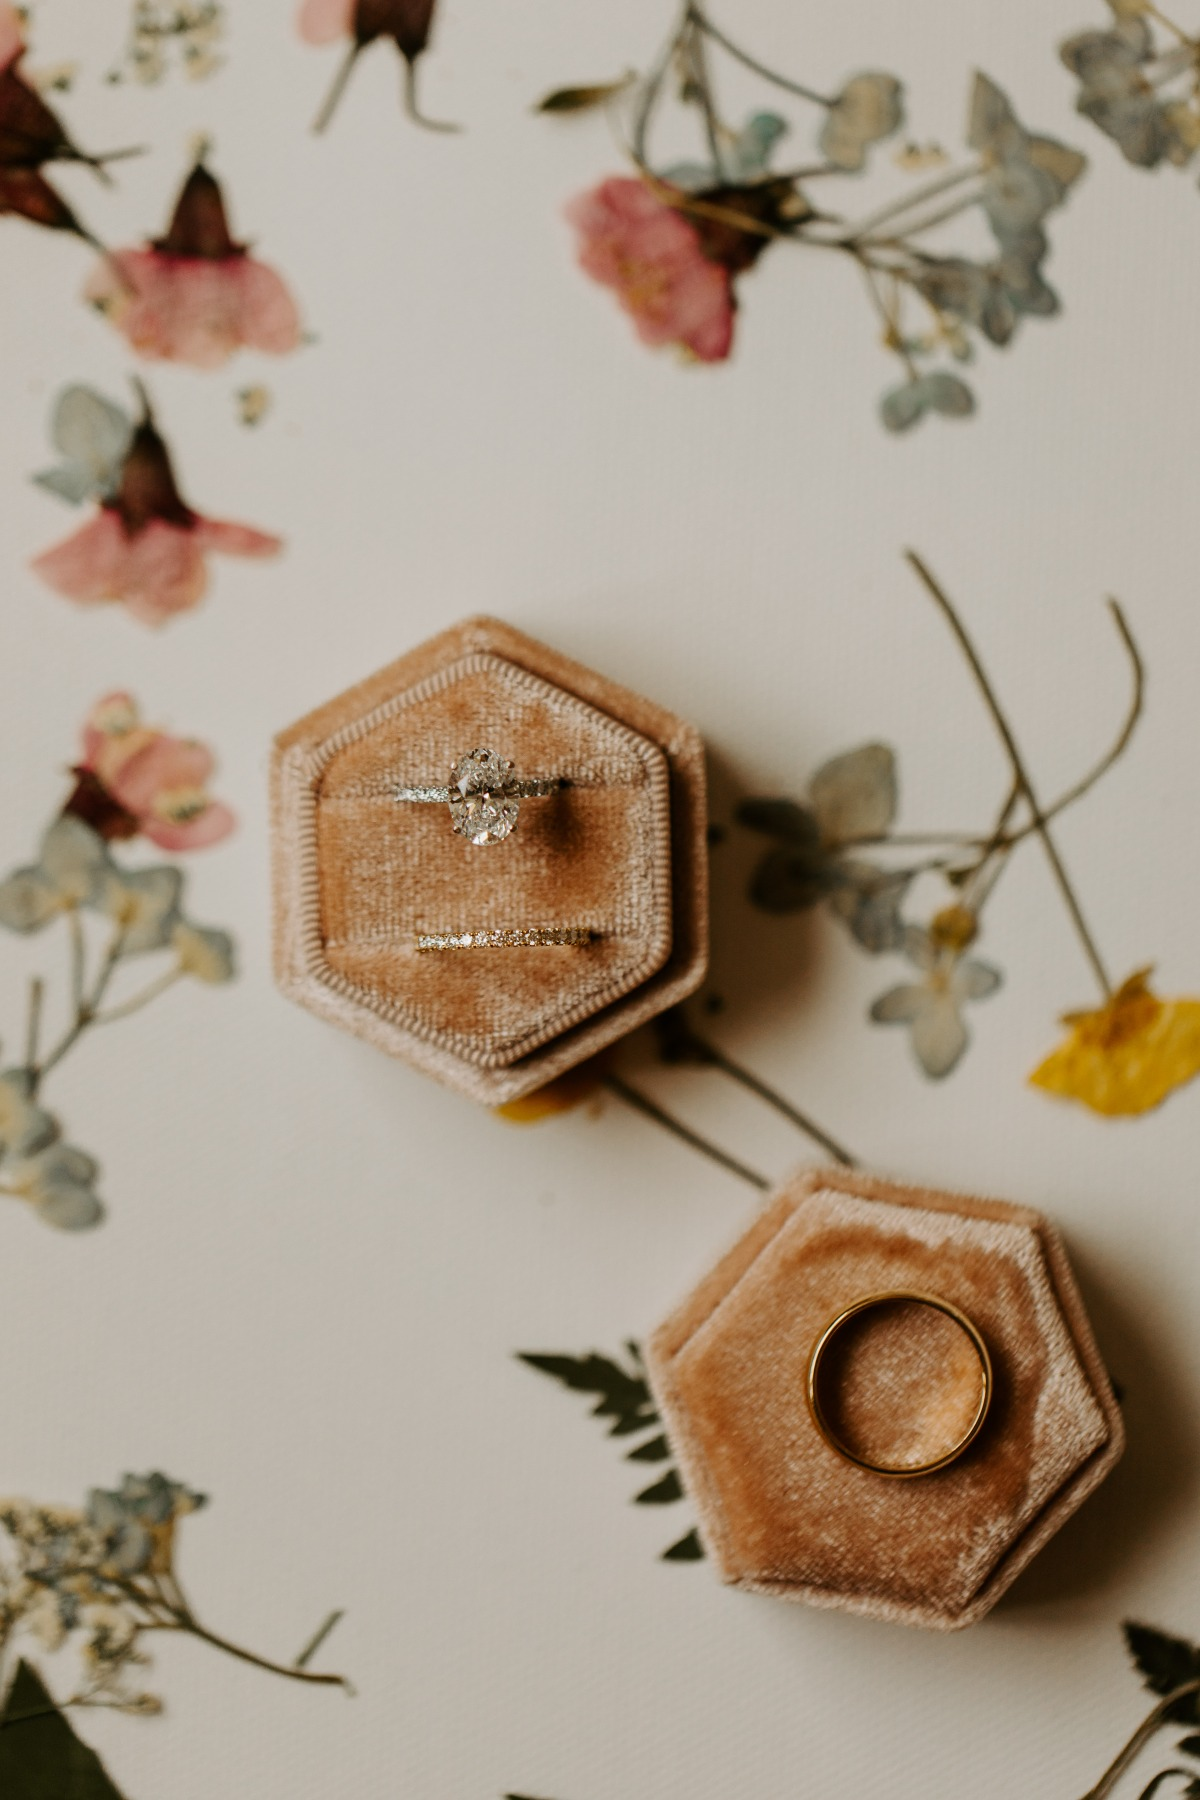 Pressed Flowers Are Our New Obsession